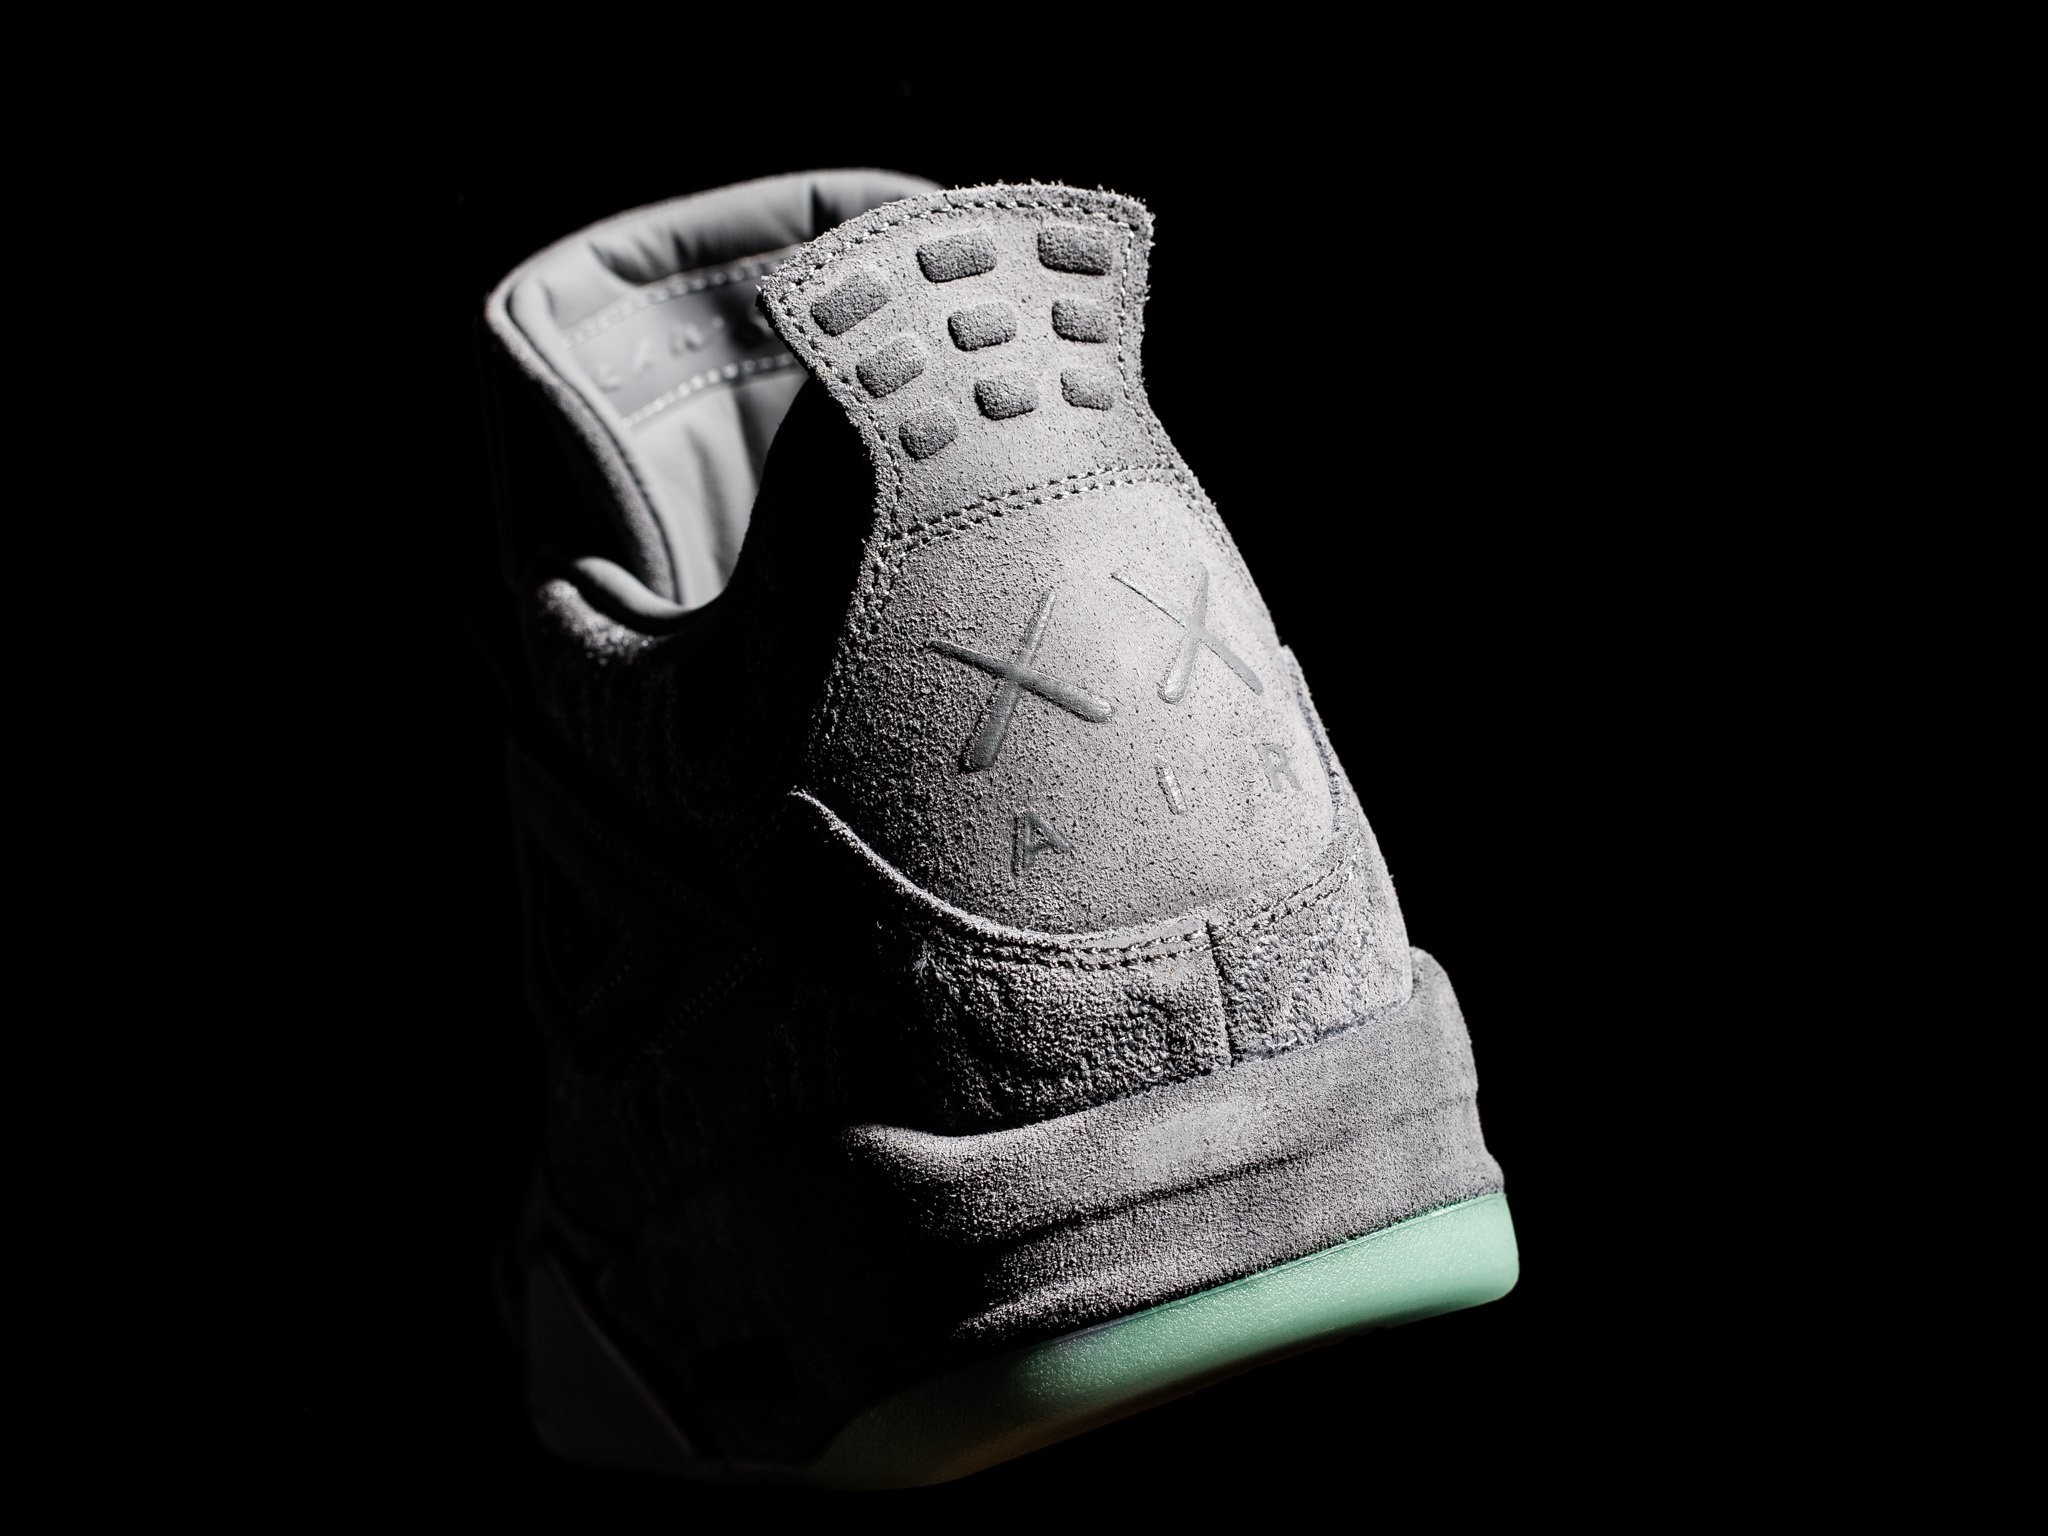 """The Air Jordan 4 Retro """"KAWS"""" is the first ever collaborative project  between the Jordan Brand and KAWS that takes the retro sneaker design past  a simple …"""